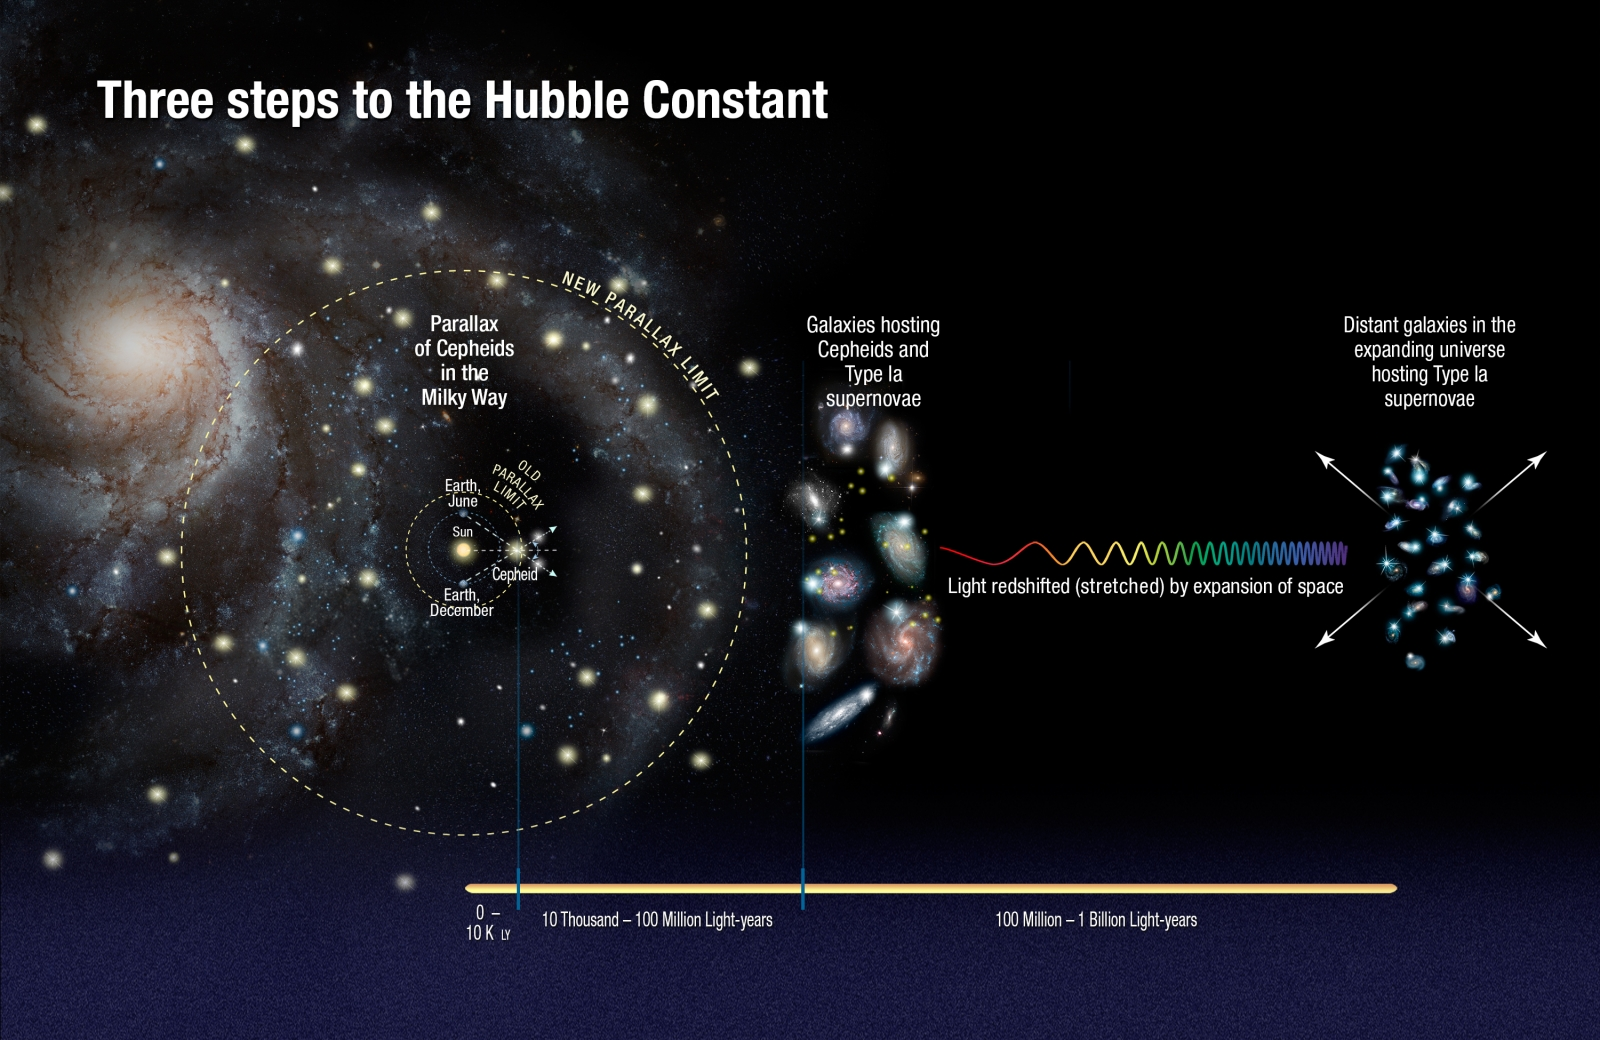 universe expanding faster